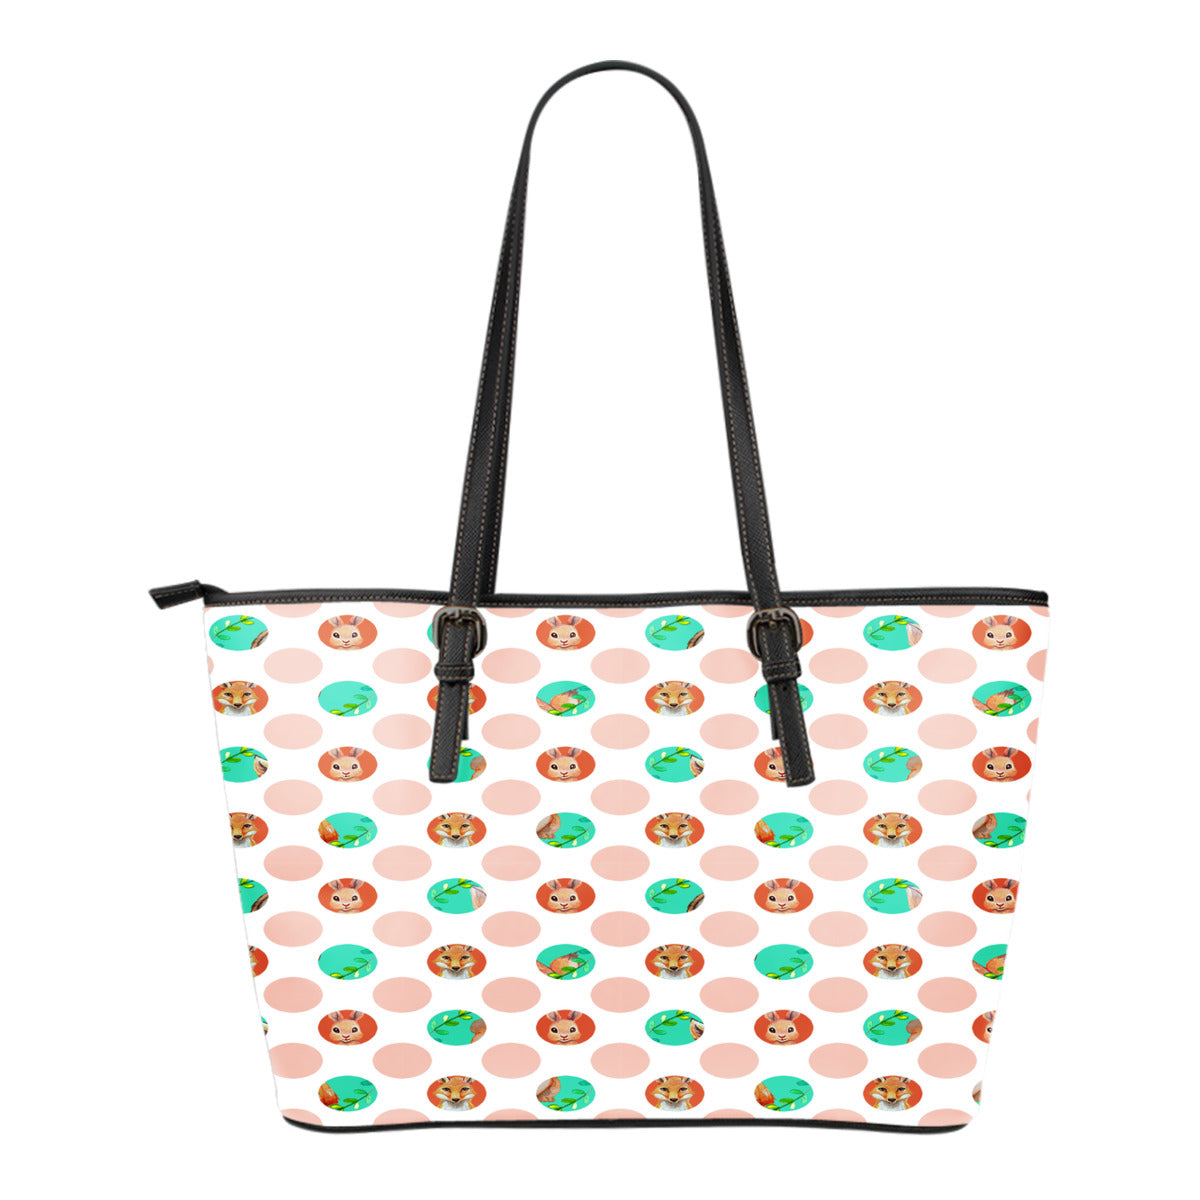 Woodland Themed Design C12 Women Small Leather Tote Bag